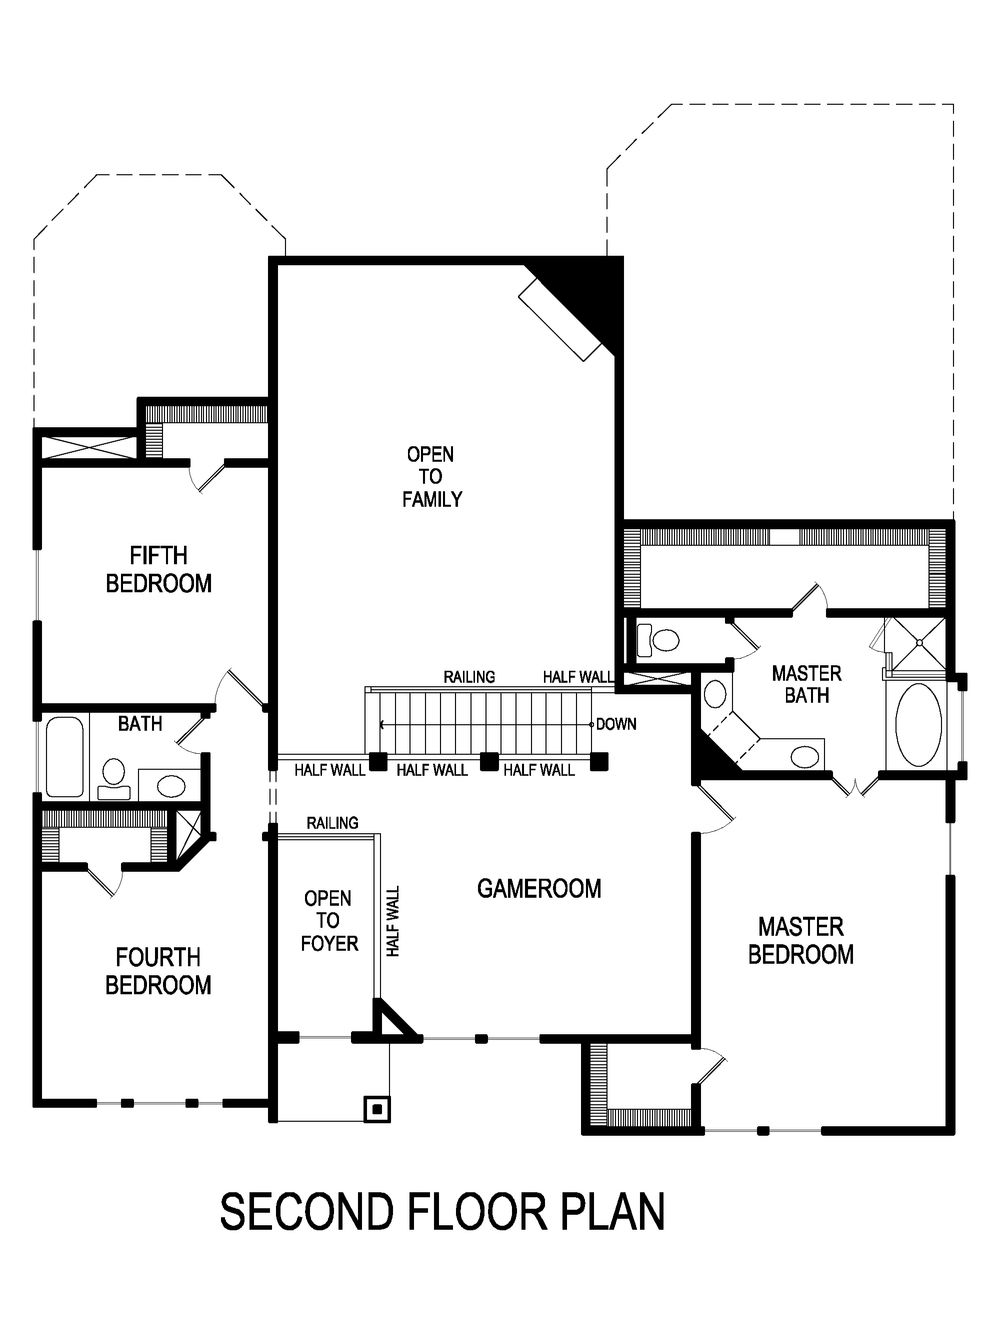 Newport F Home Plan by First Texas Homes in Llano Springs